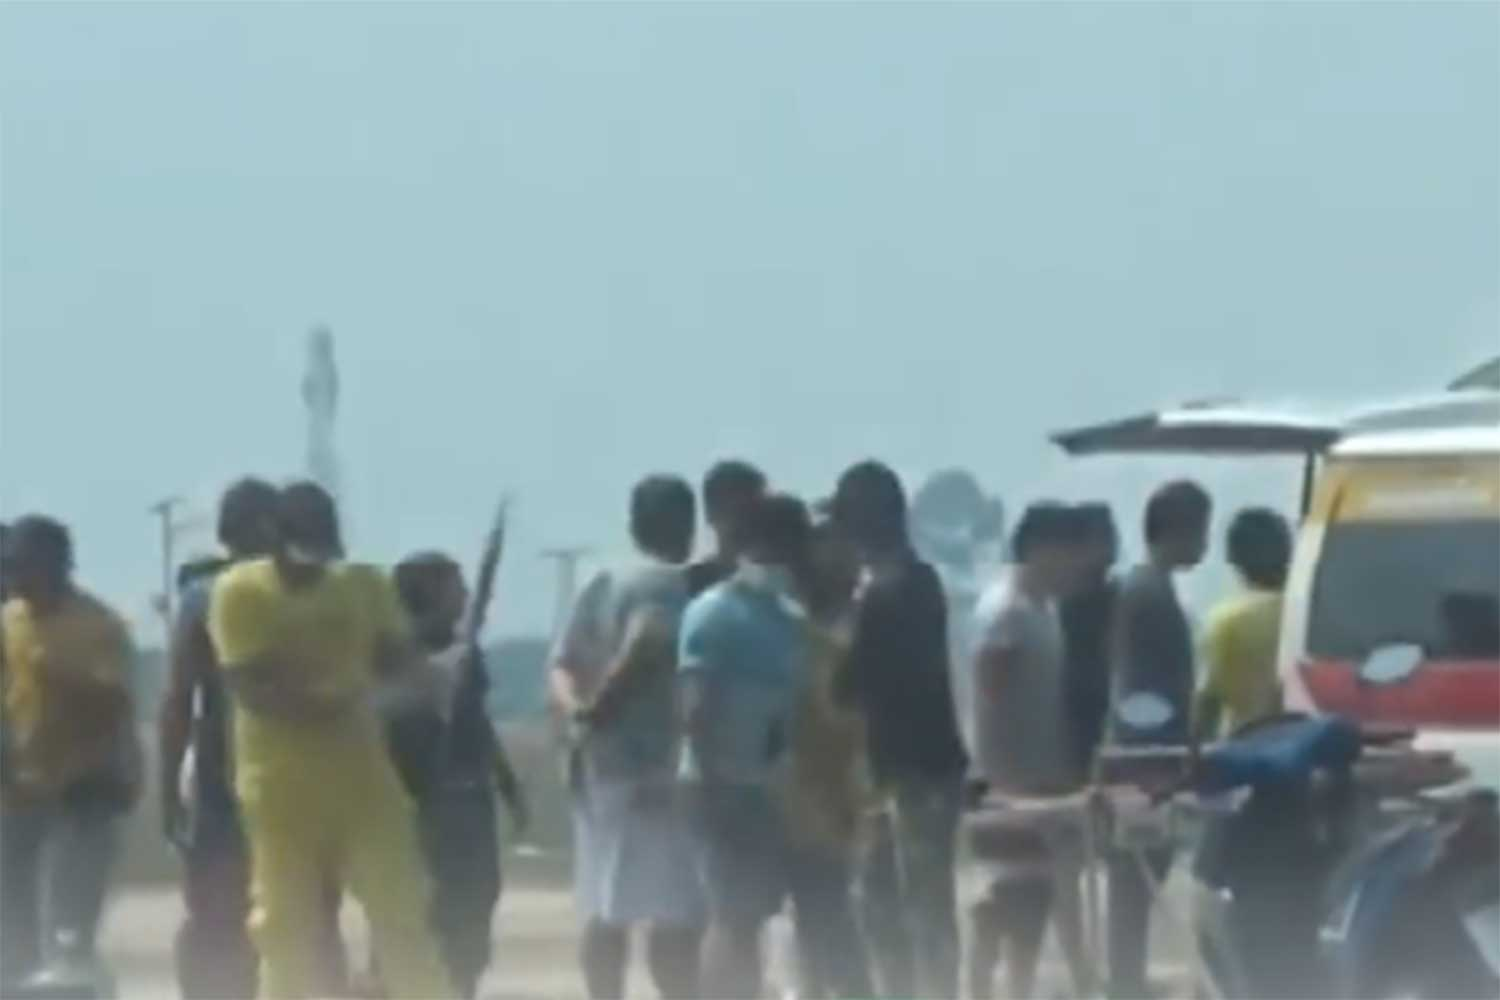 Rescue volunteers prepare to take a 30-year-old Danish man, badly injured after his parachute failed to open, to hospital in Sri Racha on Saturday. He died there of his injuries. (Screenshot from Workpoint TV)